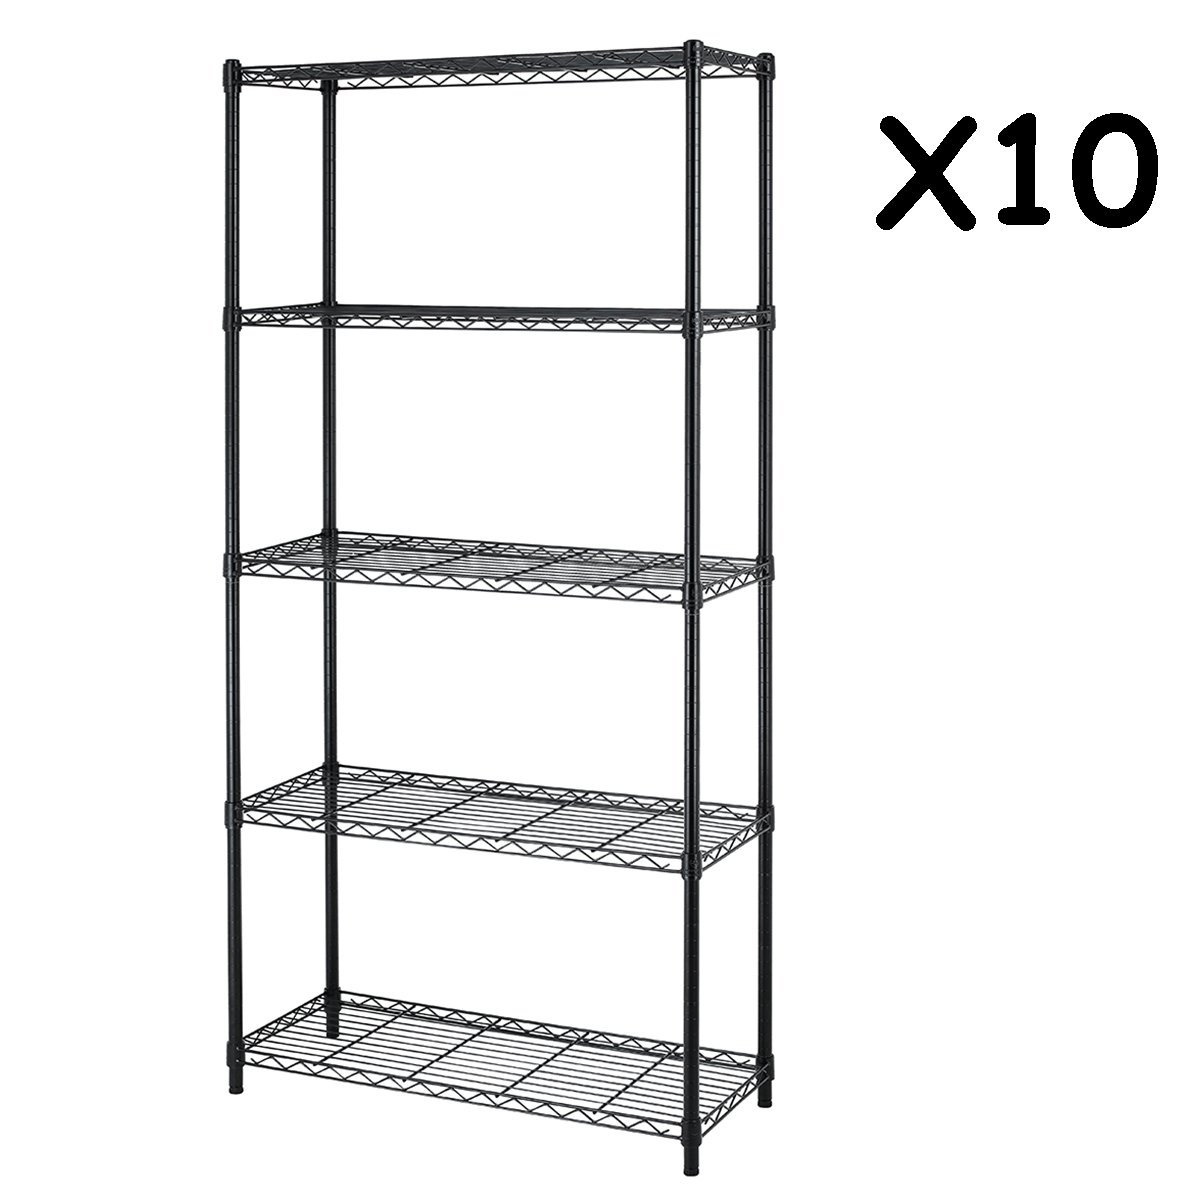 5-Shelf Steel Wire Tier Layer Shelving 72''x36''x14'' Storage Rack,Black,10 pcs